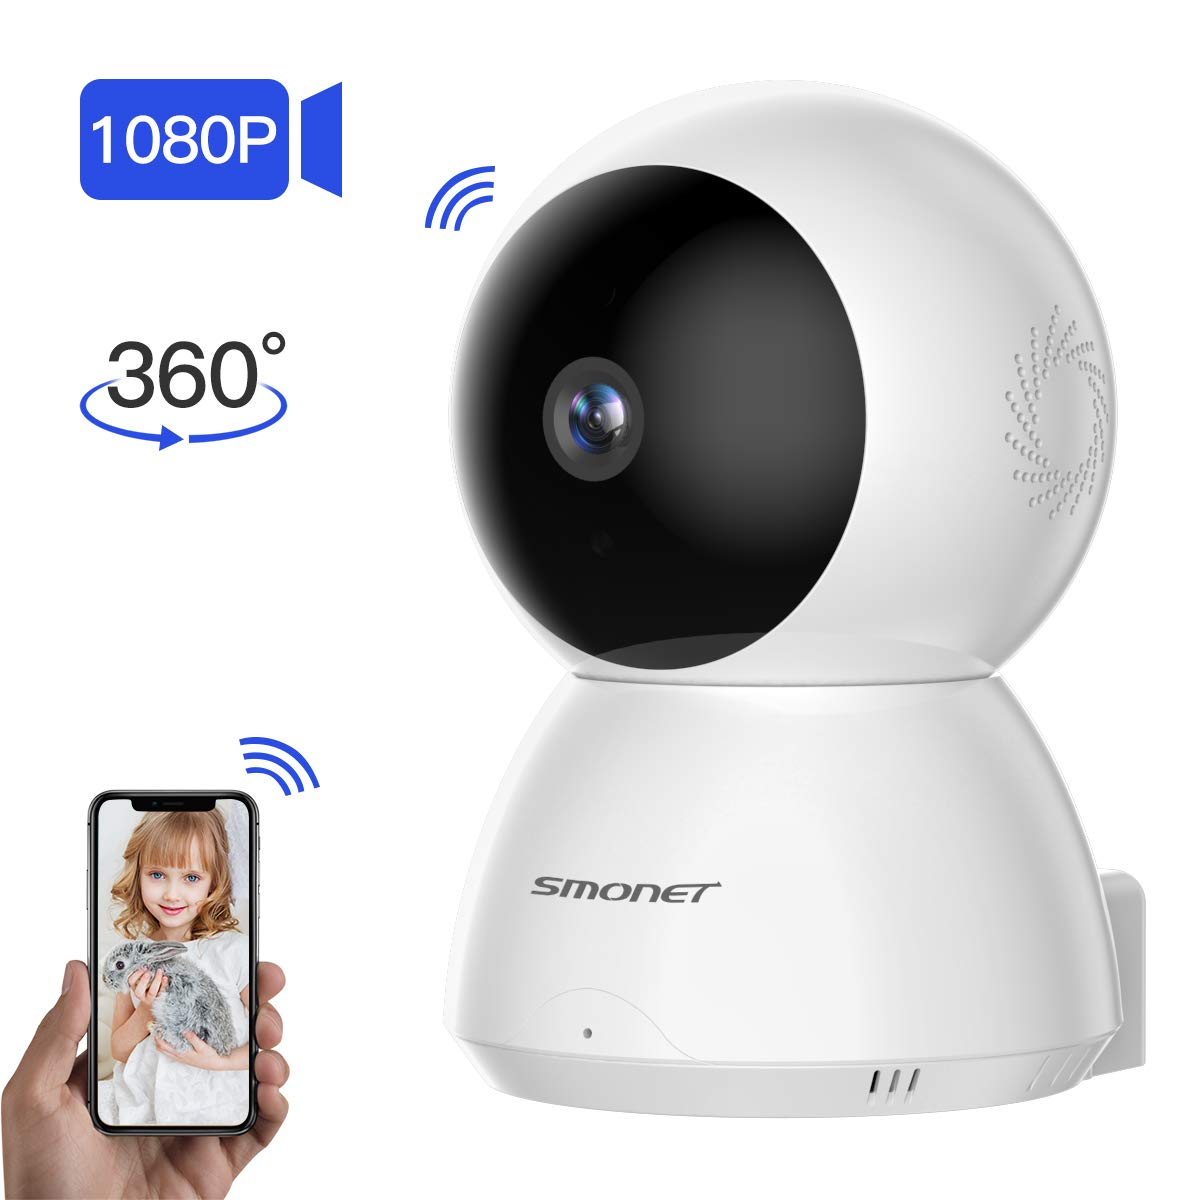 SMONET Security Camera,1080P WiFi Home IP Camera Pan Tilt Zoom Wireless Indoor Camera with Motion Detection,Night Vision,Two-Way Audio for Pet Nanny Elder Baby,Free App